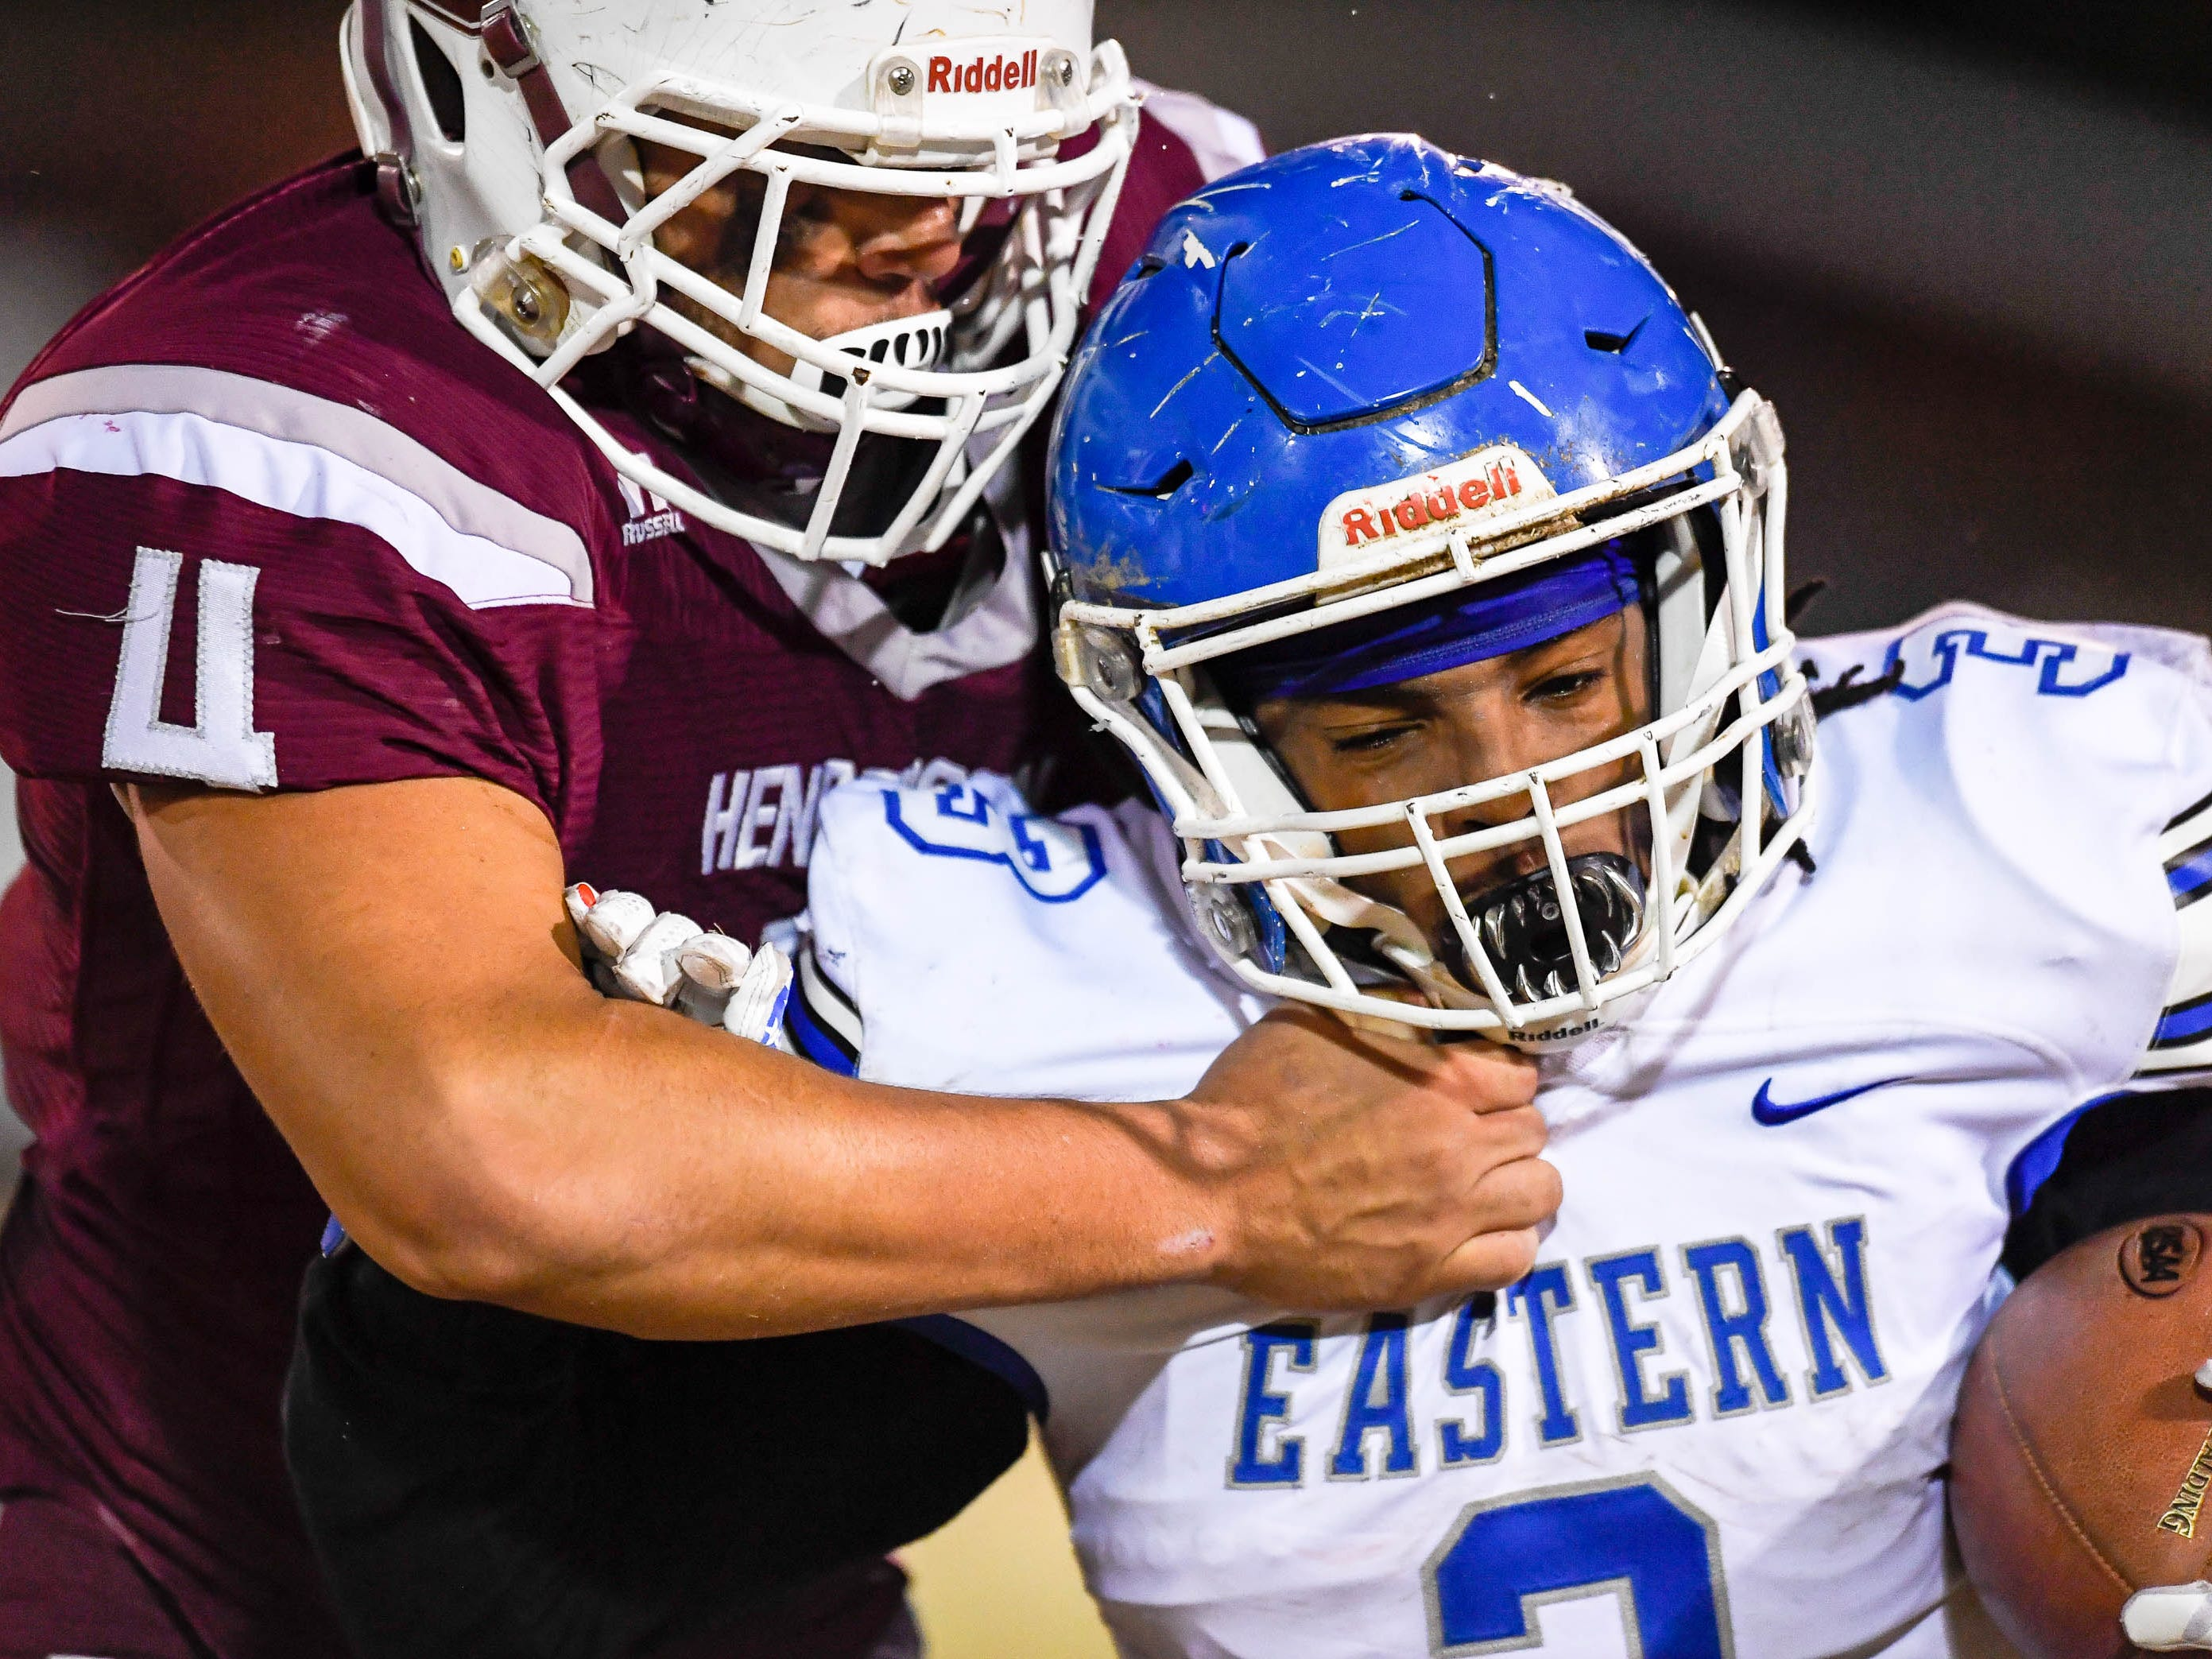 Henderson's Layton Fletcher (4) tackles receiver Eastern's Elijah Irvine (3) as the Henderson County Colonels play the Louisville Eastern Eagles in the first round of the 6-A playoffs at Colonel Field Friday, November 2, 2018.